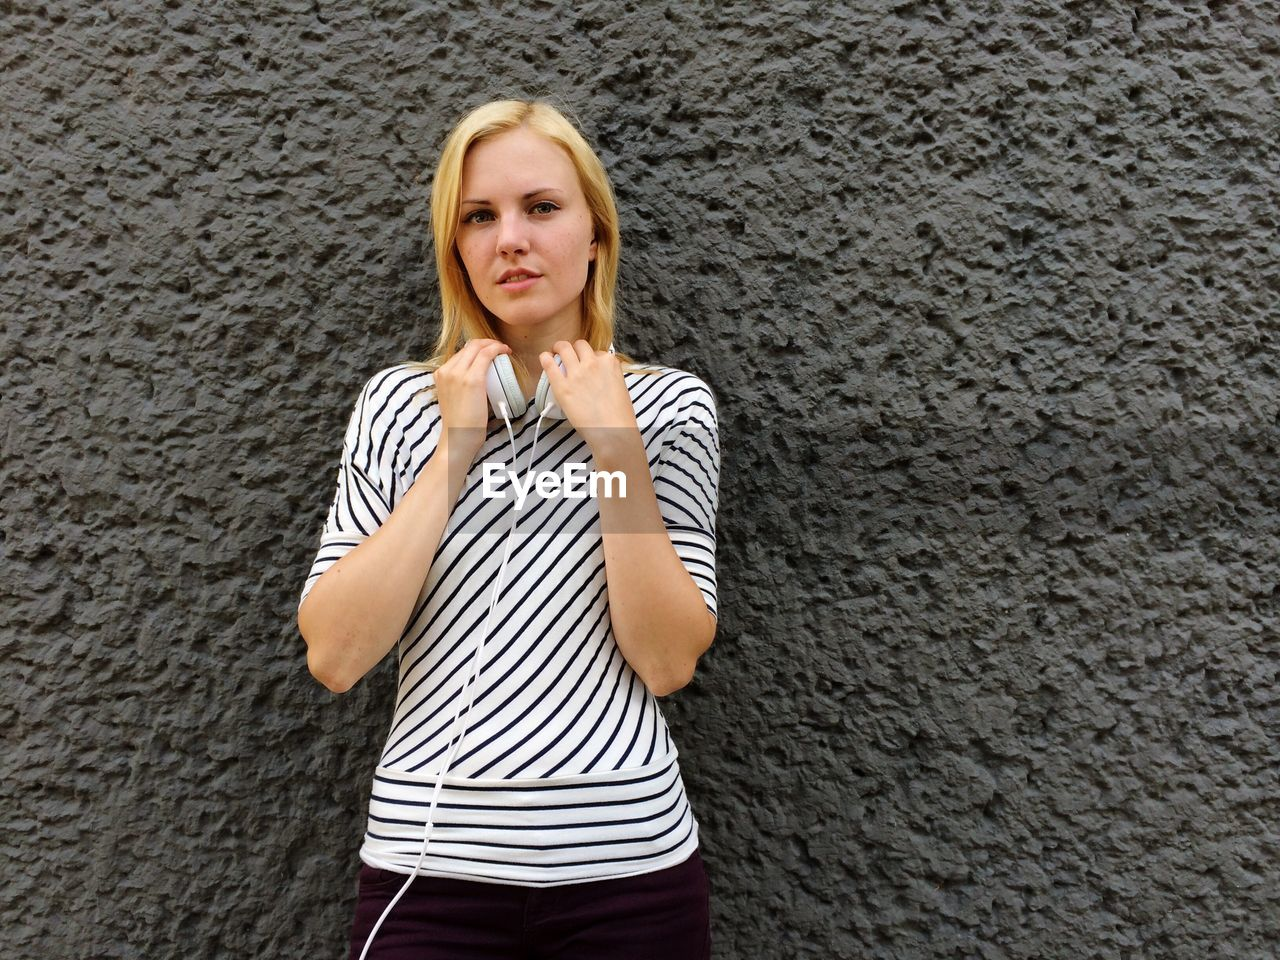 Portrait of young woman with headphones against wall